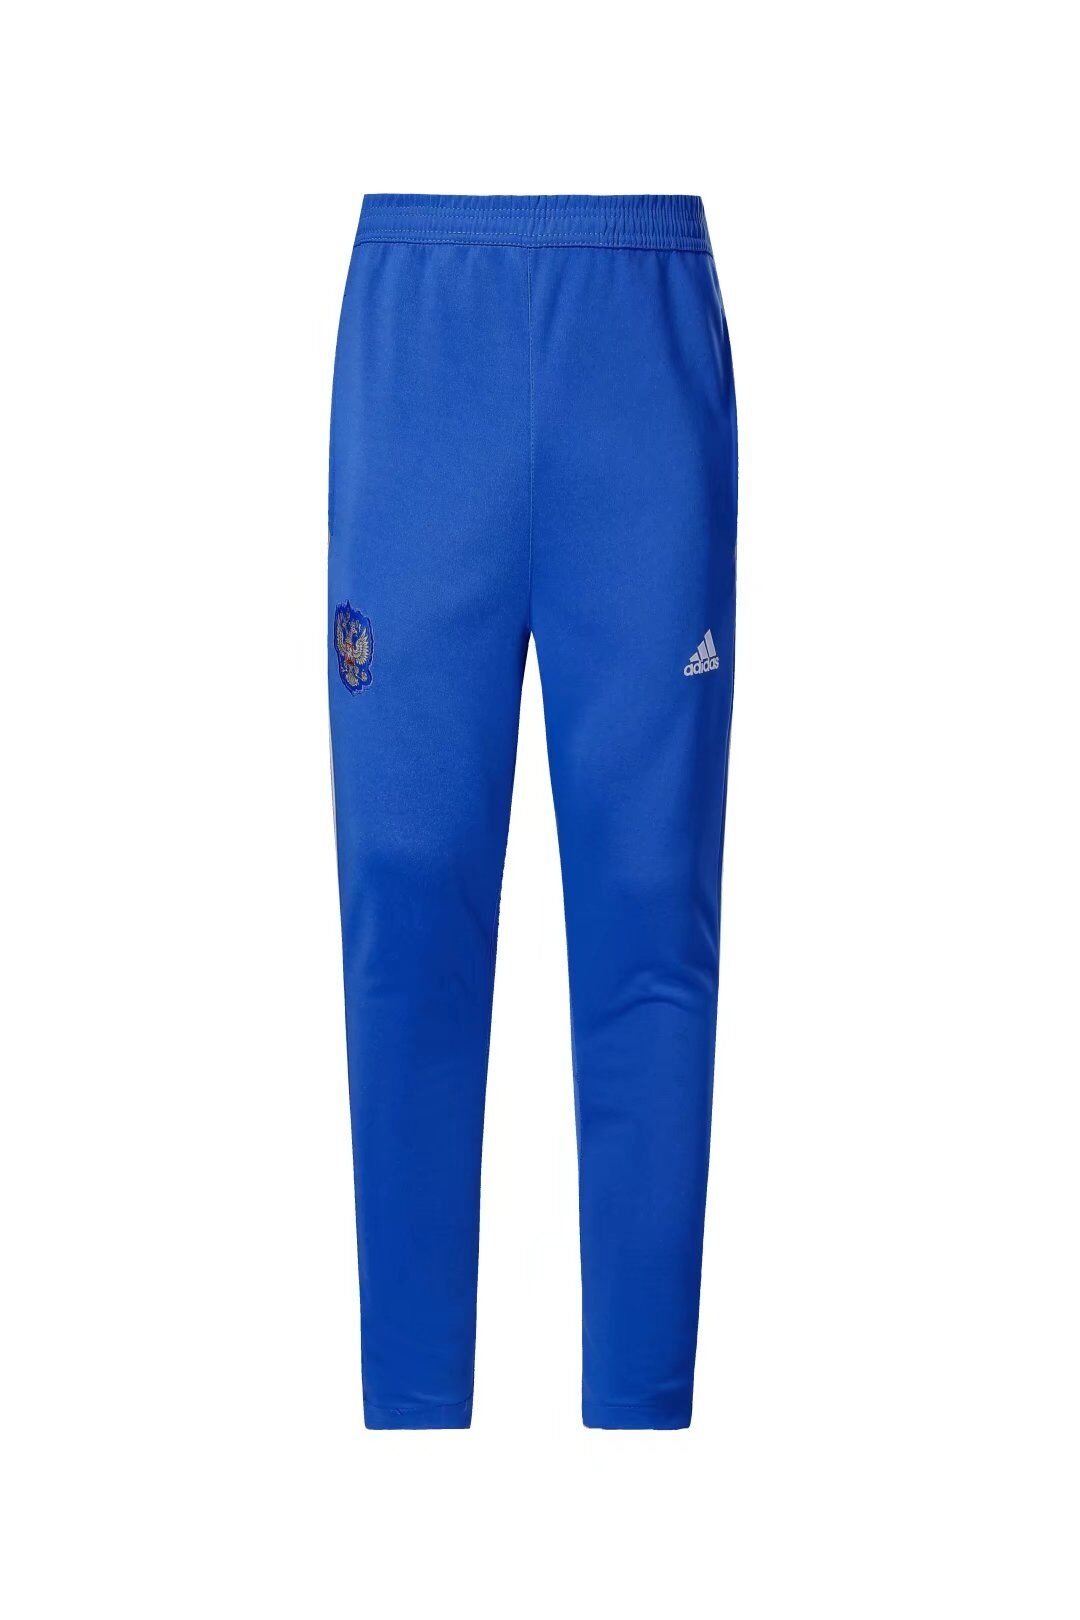 Russia Training Pants Blue World Cup 2018